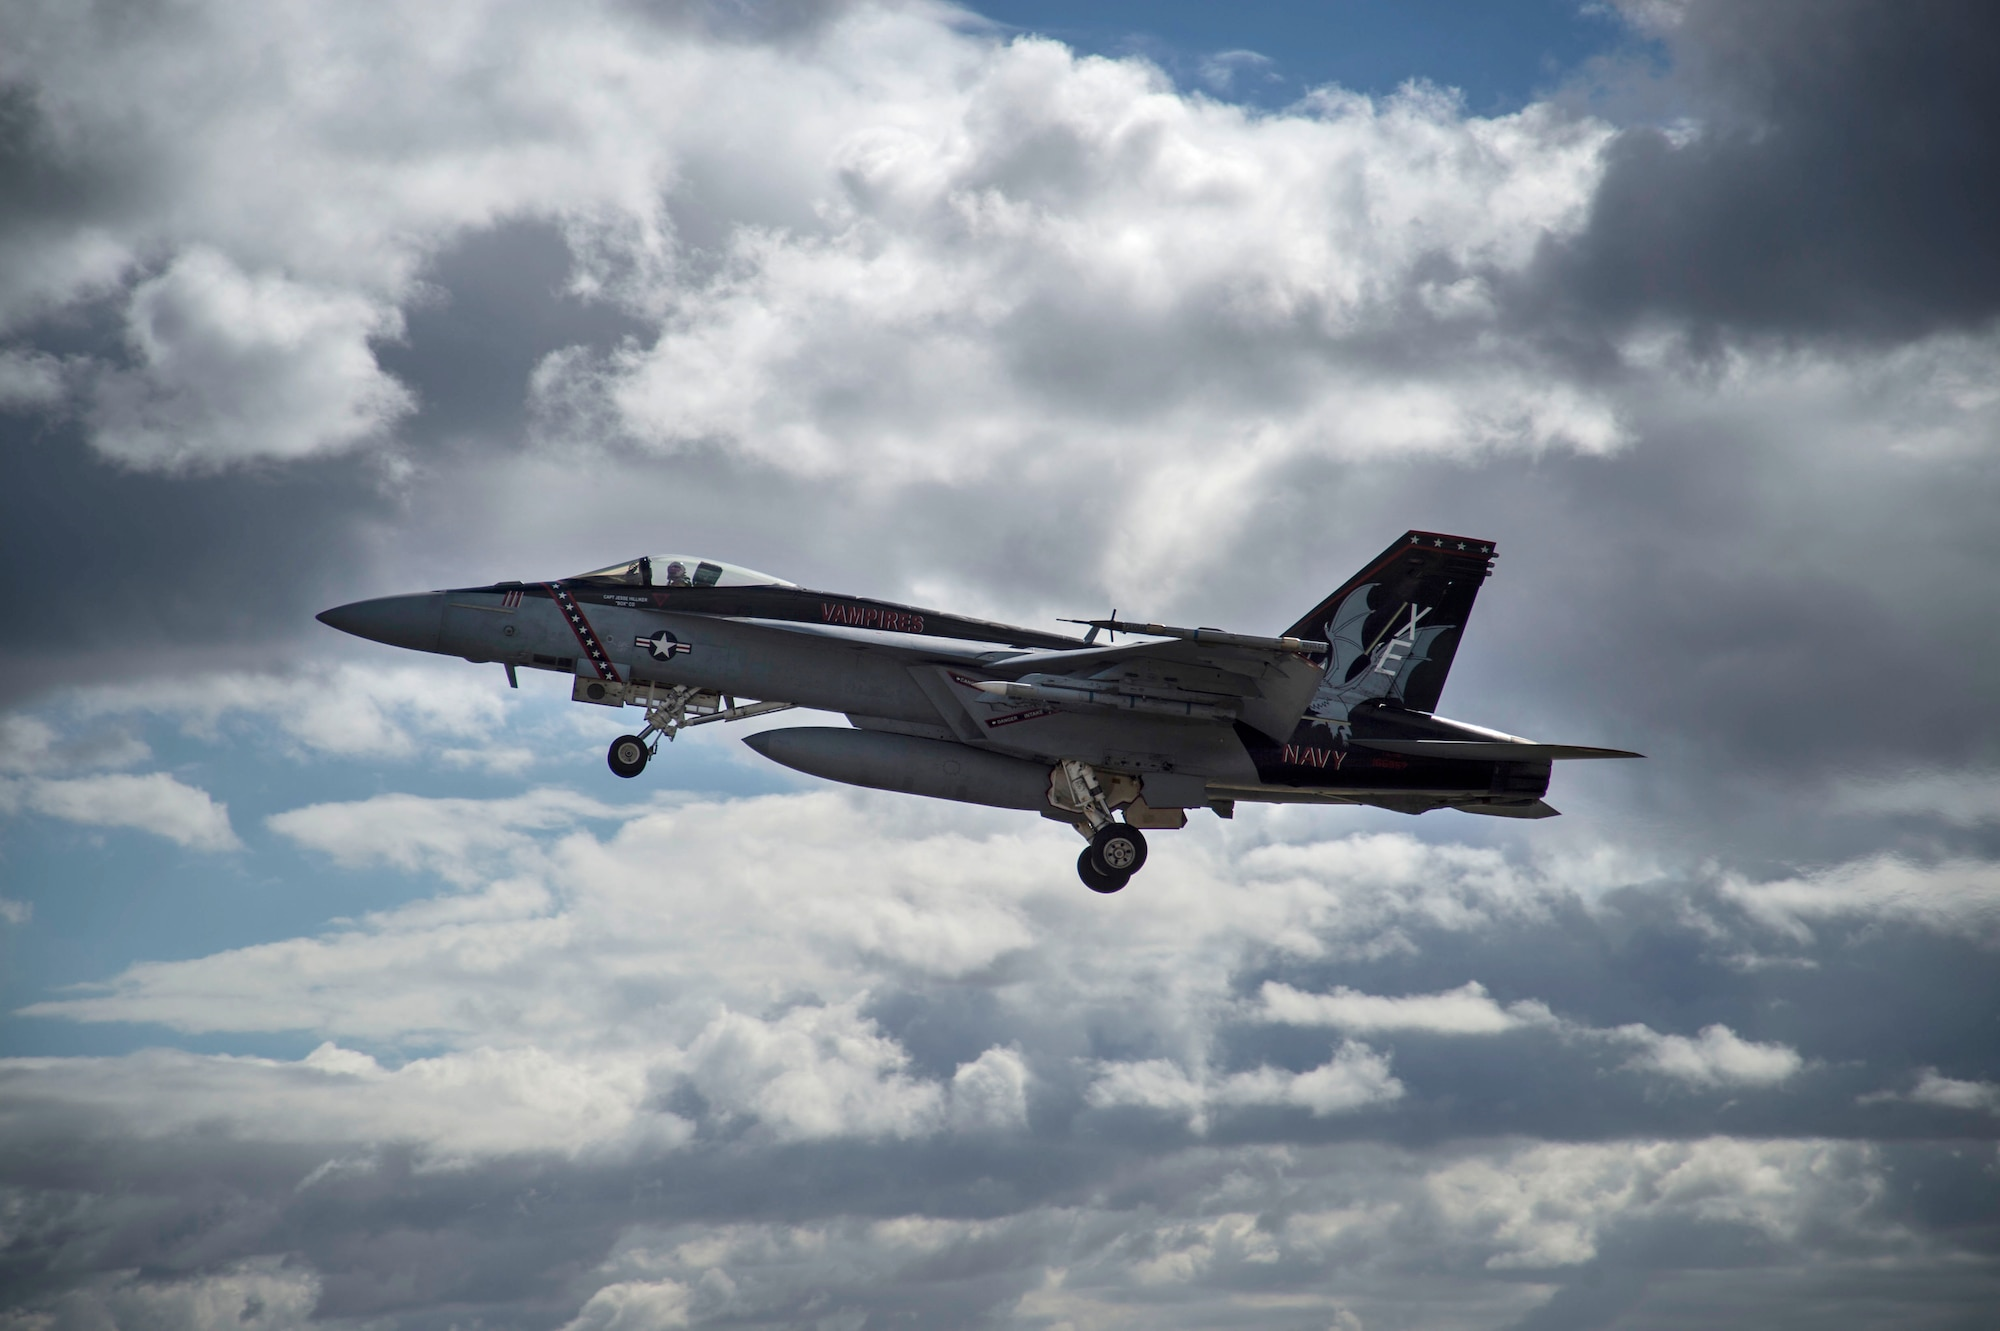 A U.S. Navy F/A-18F Super Hornet from China Lake, California, takes off from Joint Base Pearl Harbor-Hickam, Hawaii, during Sentry Aloha 19-1, Dec. 18, 2018